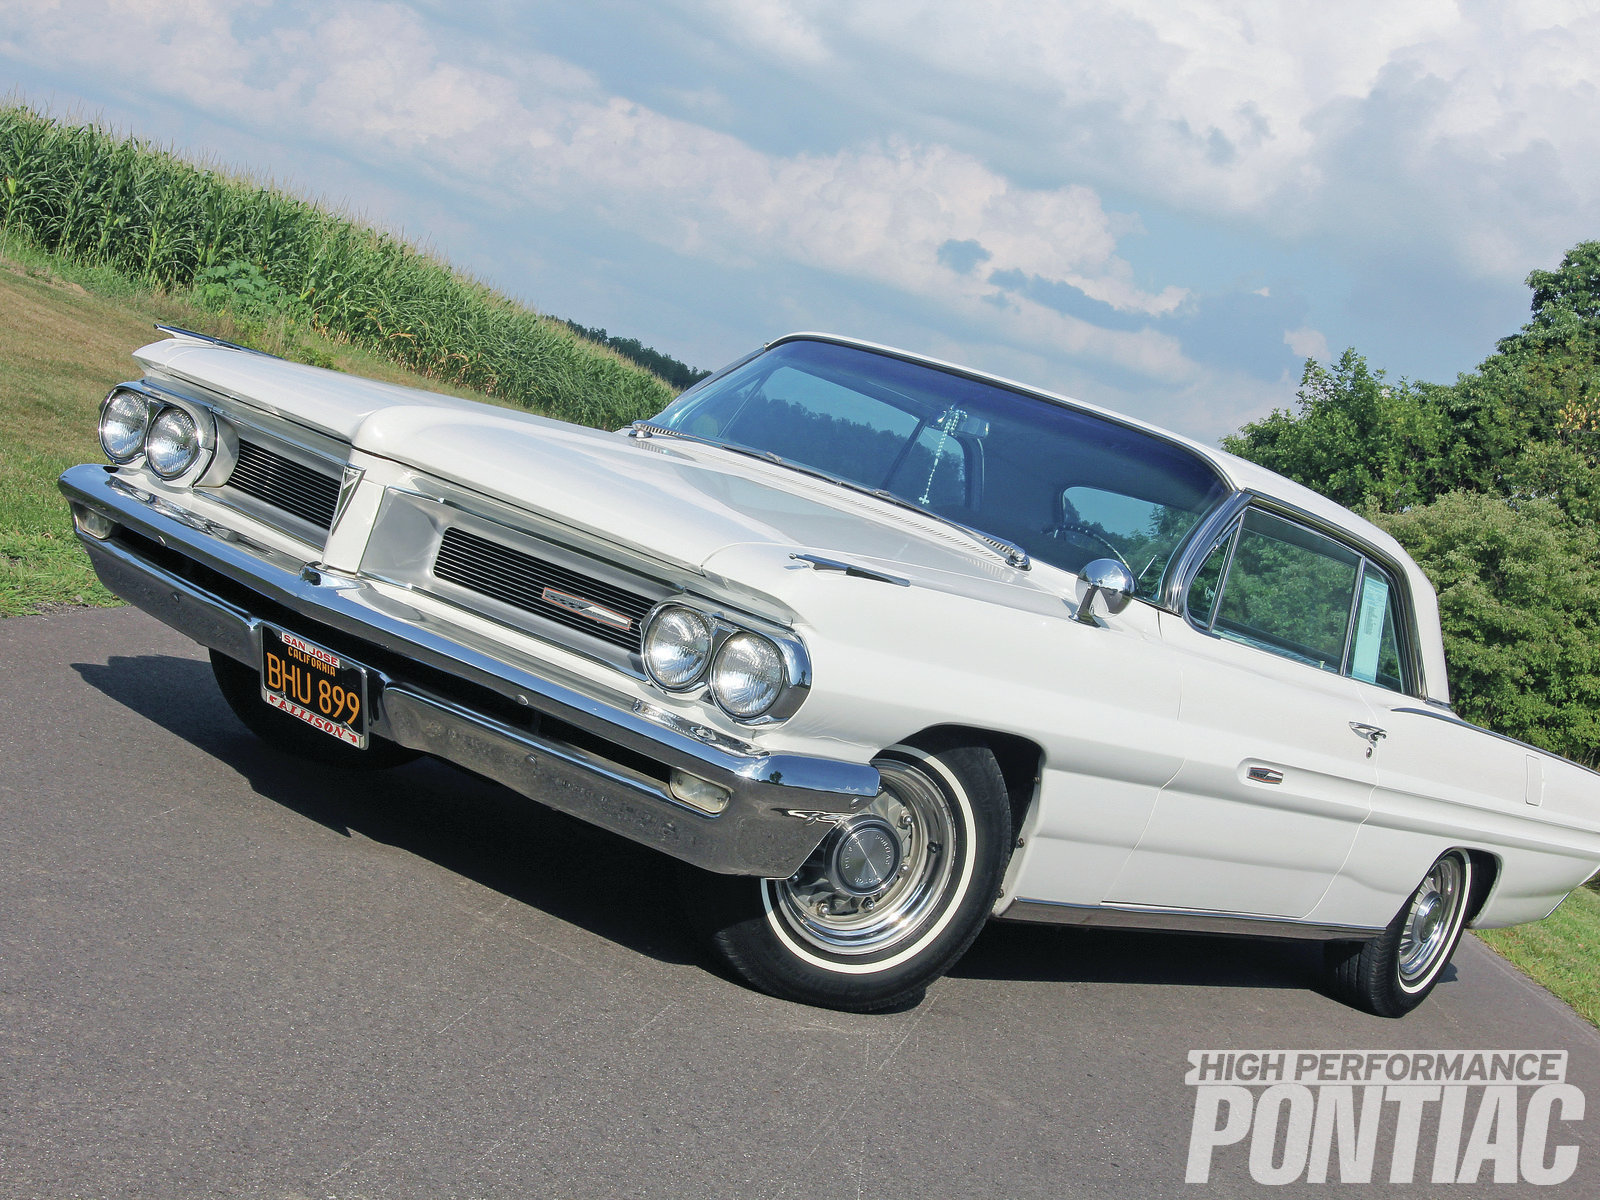 """Unlike the rest of the full-size '62 Pontiac lineup, the Grand Prix's bodysides do not feature a beltline molding. The effect may have made it more vulnerable in parking lots, but it really cleaned up the car's flanks, giving it a """"factory custom"""" look."""